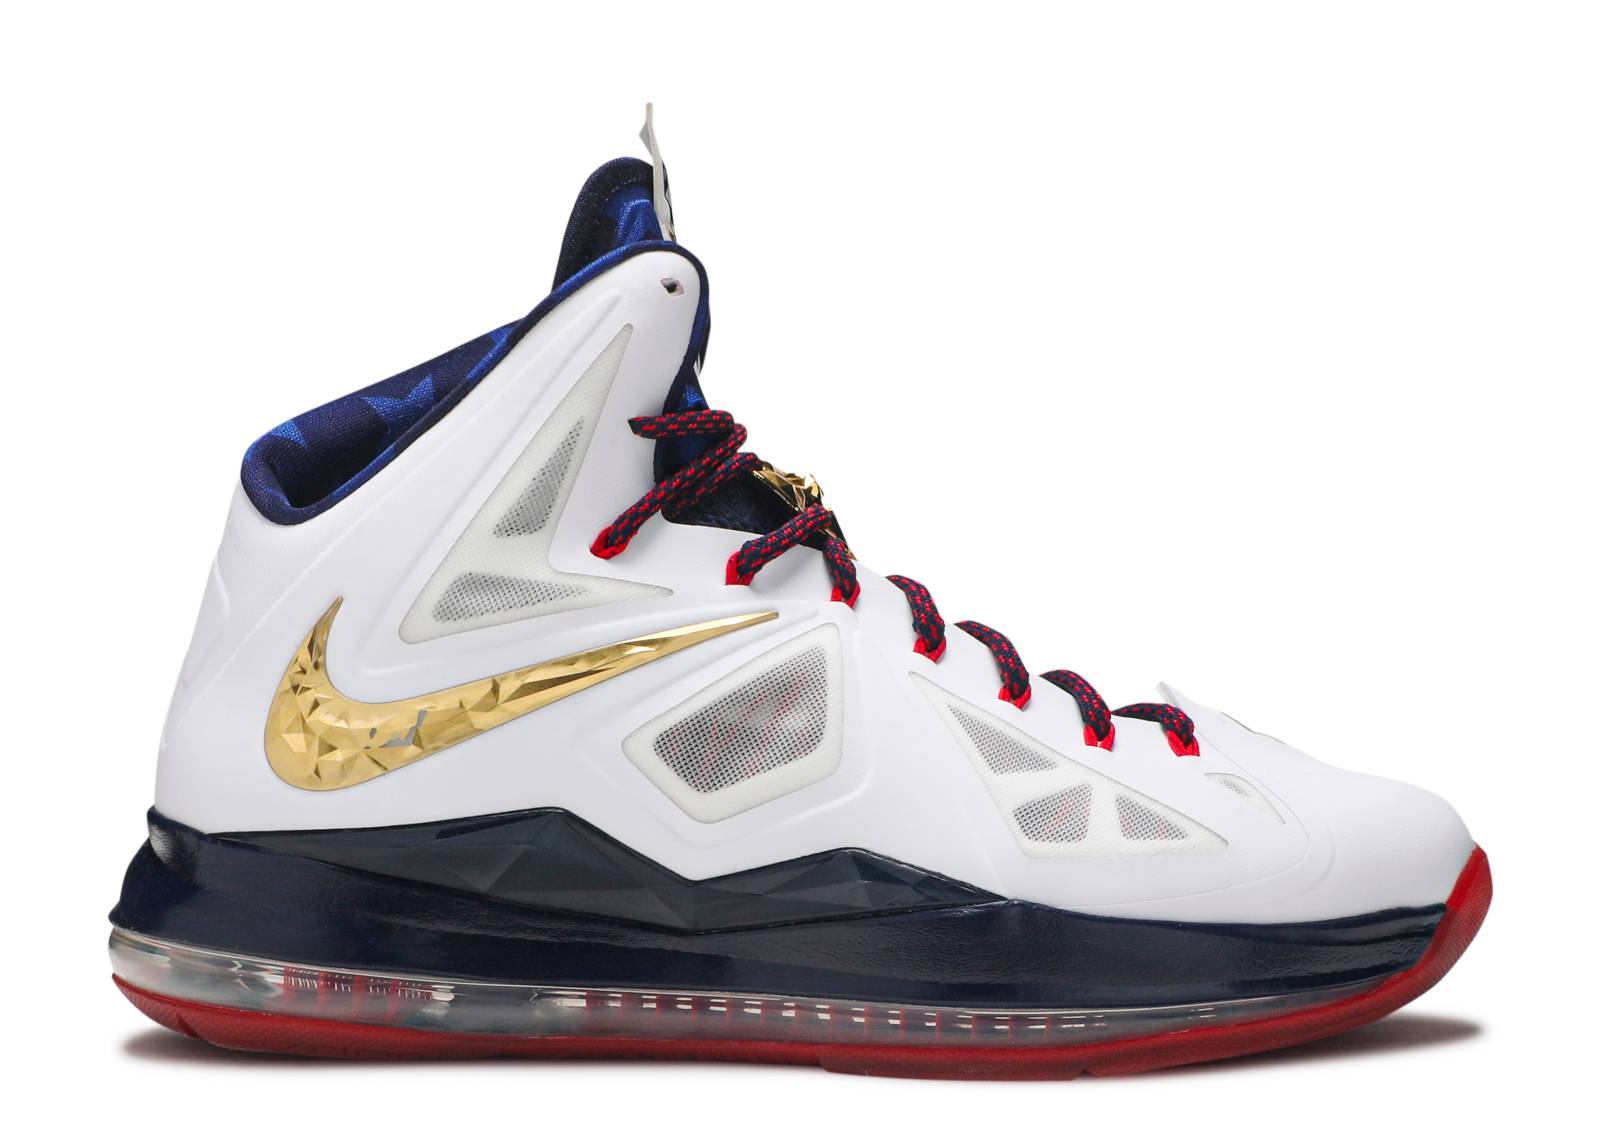 new arrival 095f4 522a9 lebron 10+ sport pack